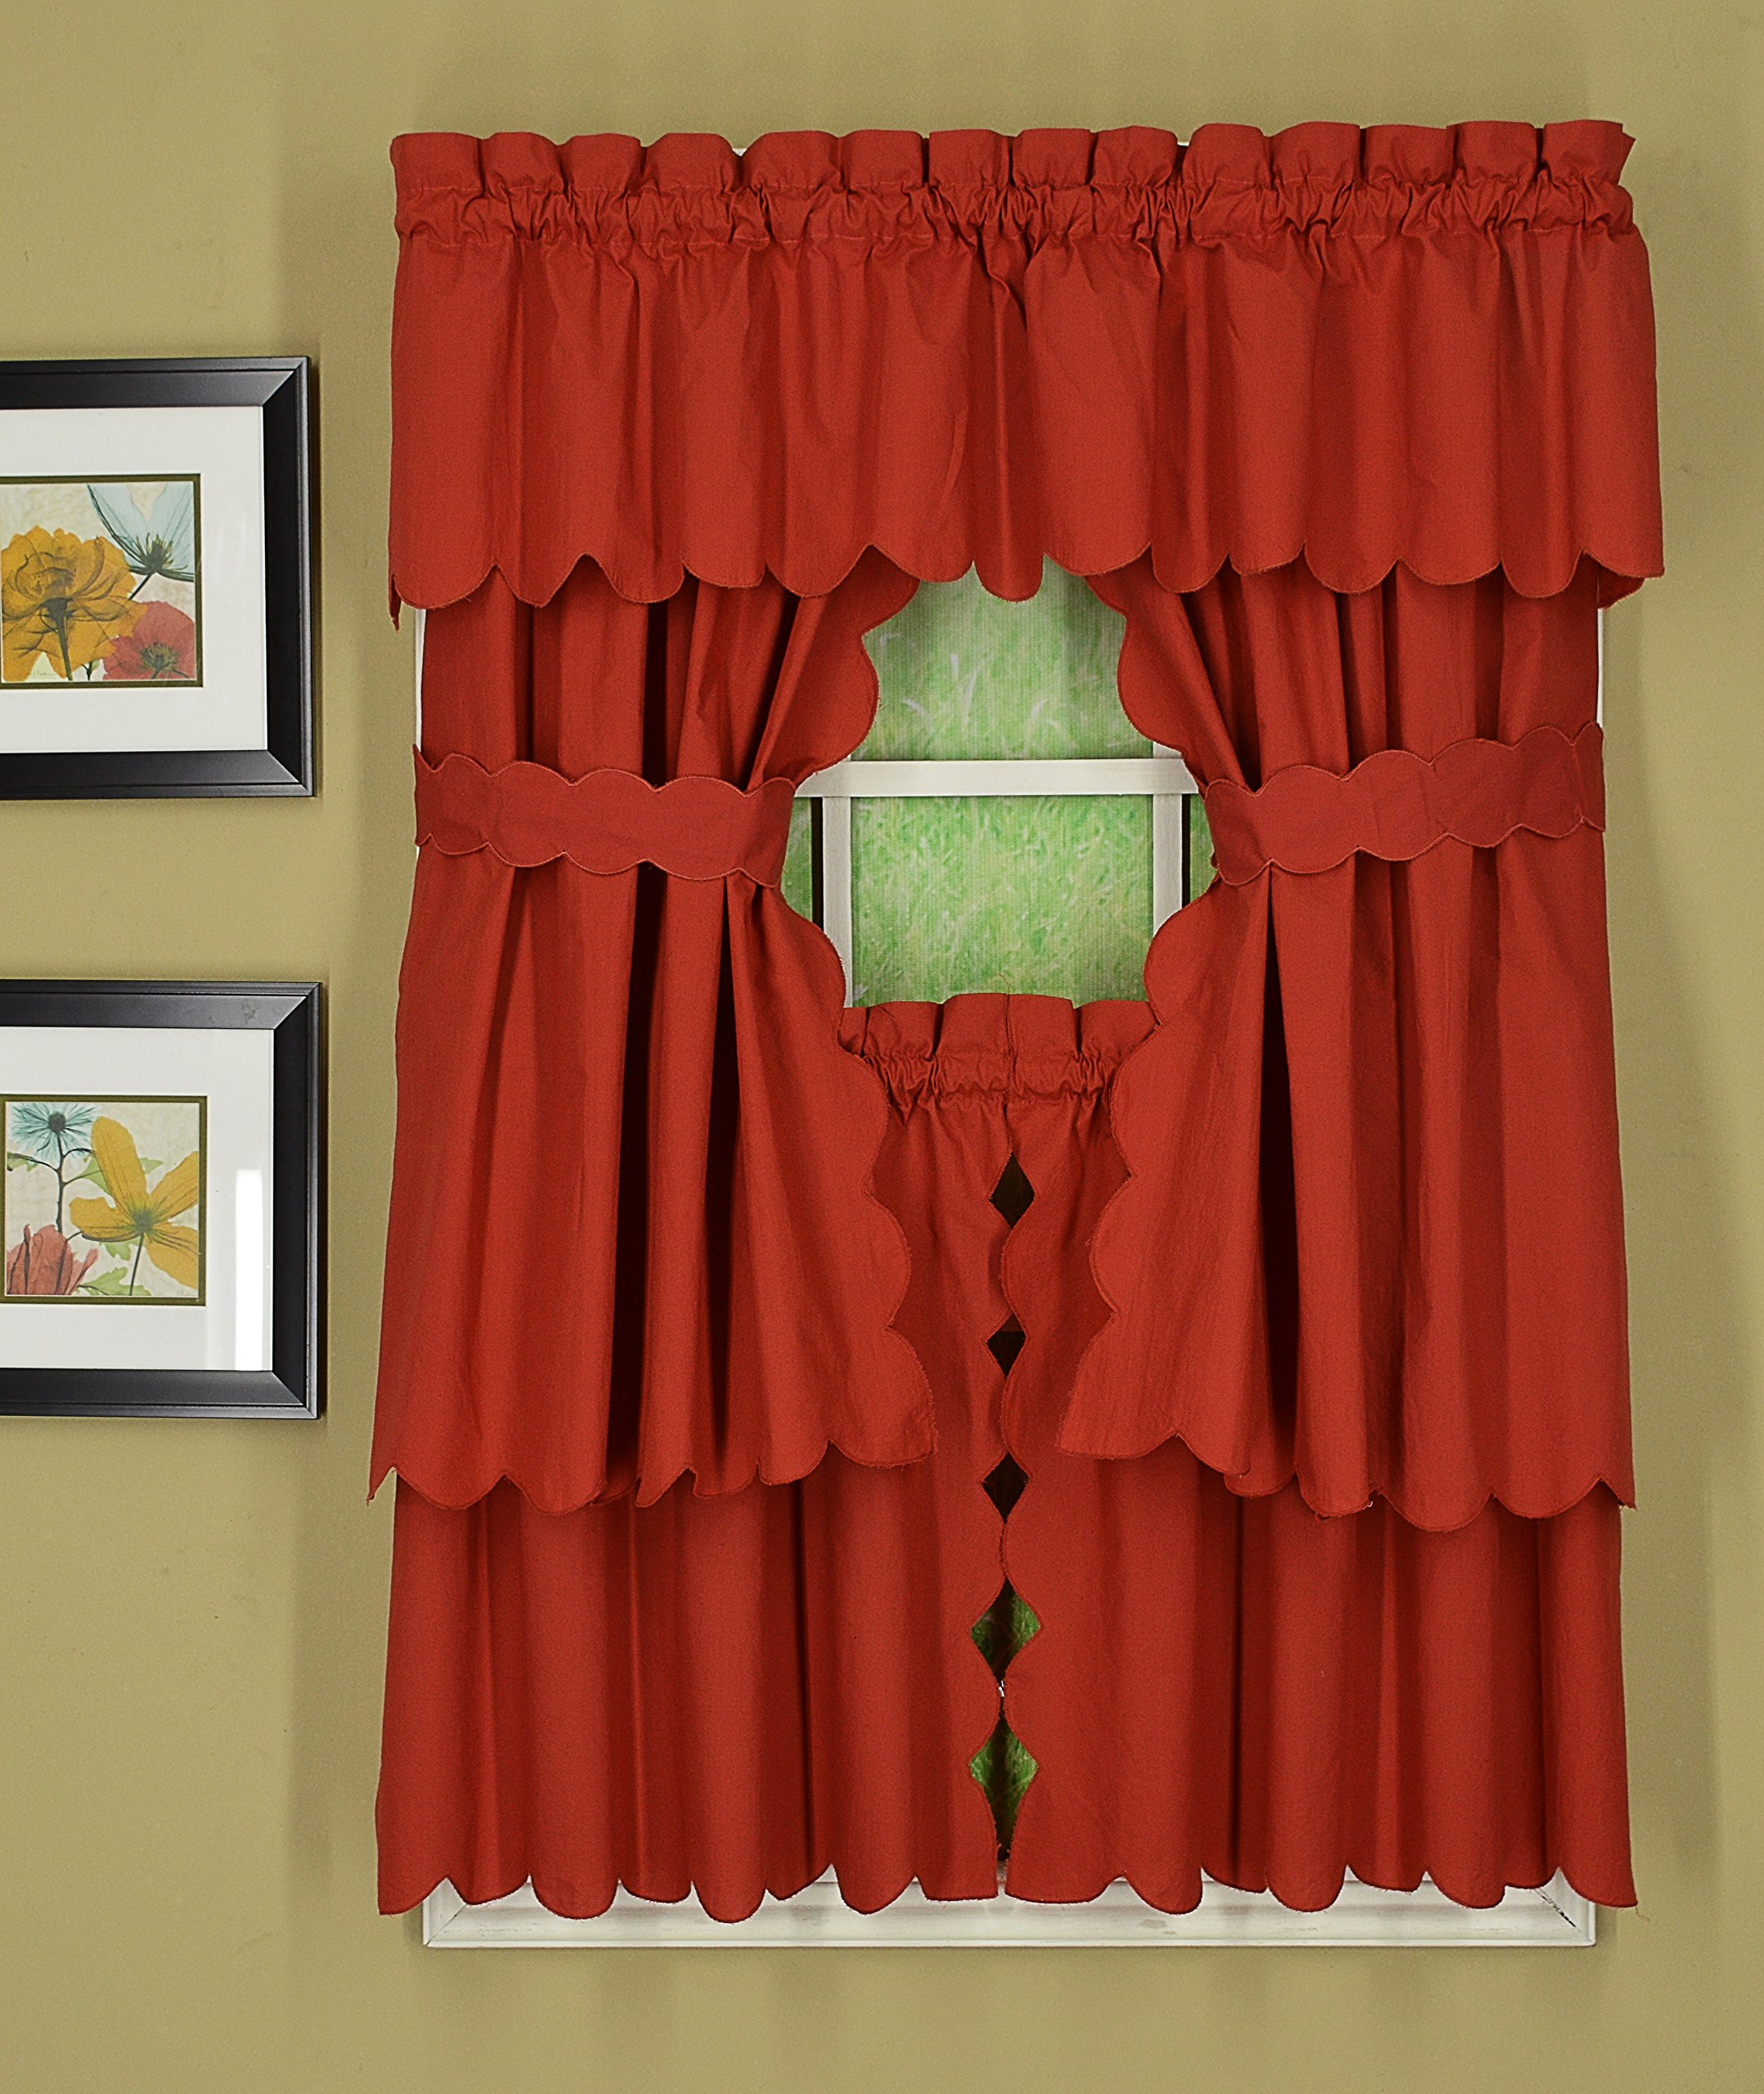 Today's Curtain CA2003K Orleans 36'' Tier Pair with Tiebacks Tambour Scallop Edge Curtain, Brick Red, 60'' W x 36'' L/TB